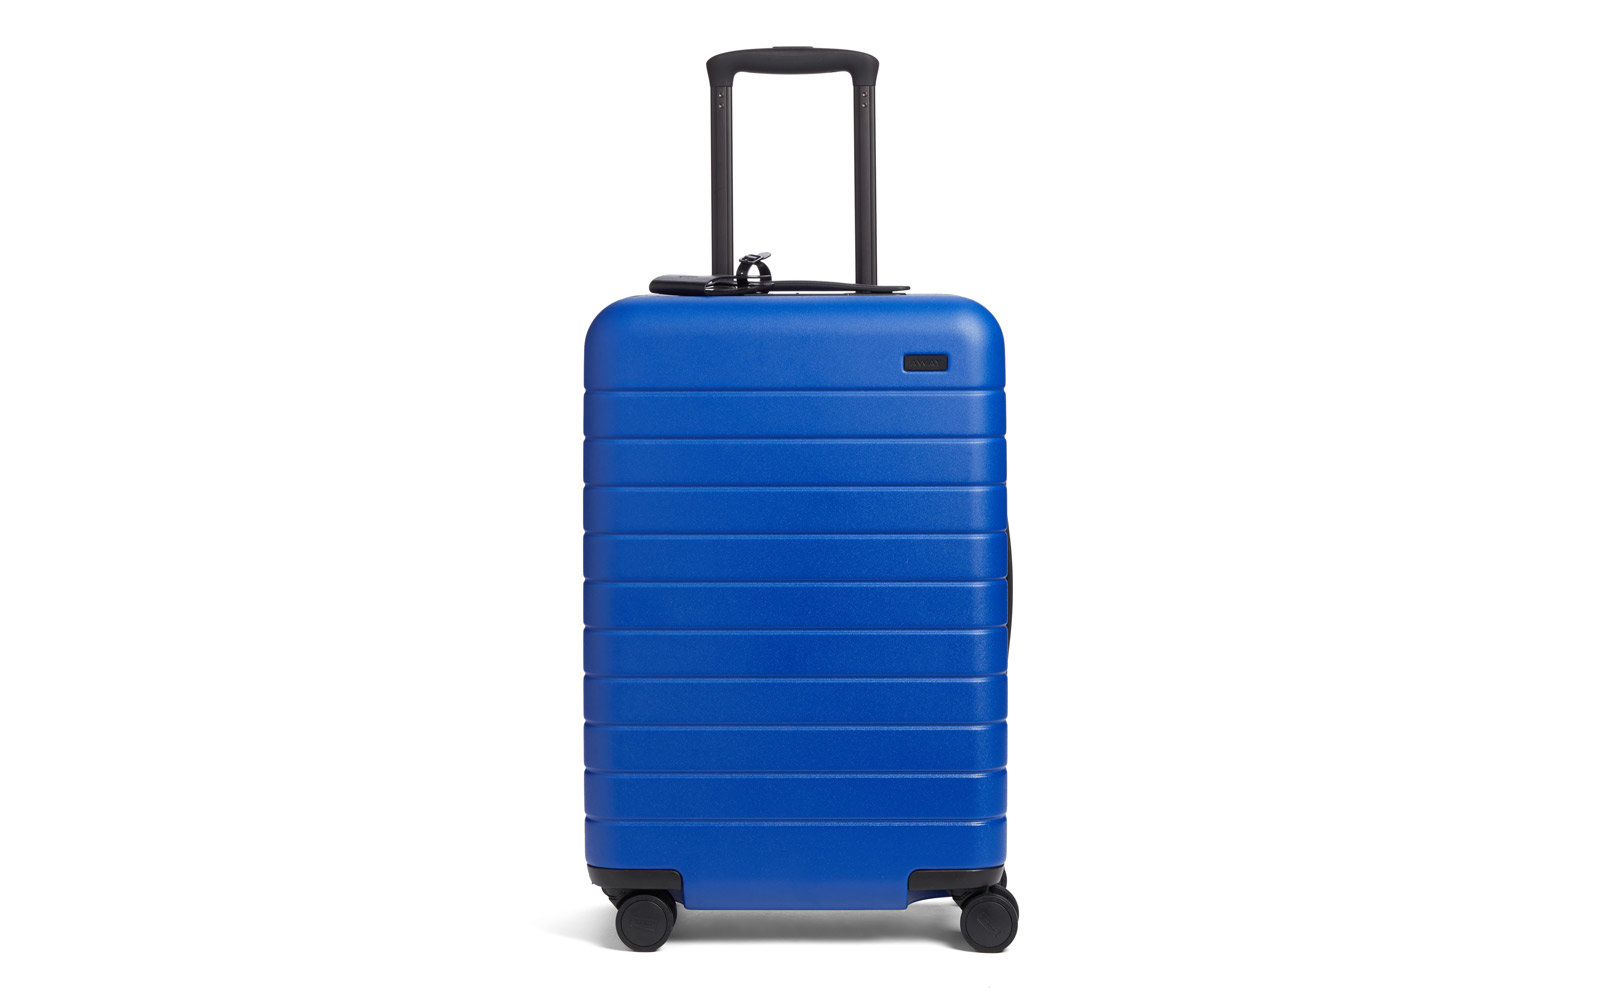 Away The Bigger Carry-On Hard Shell Suitcase